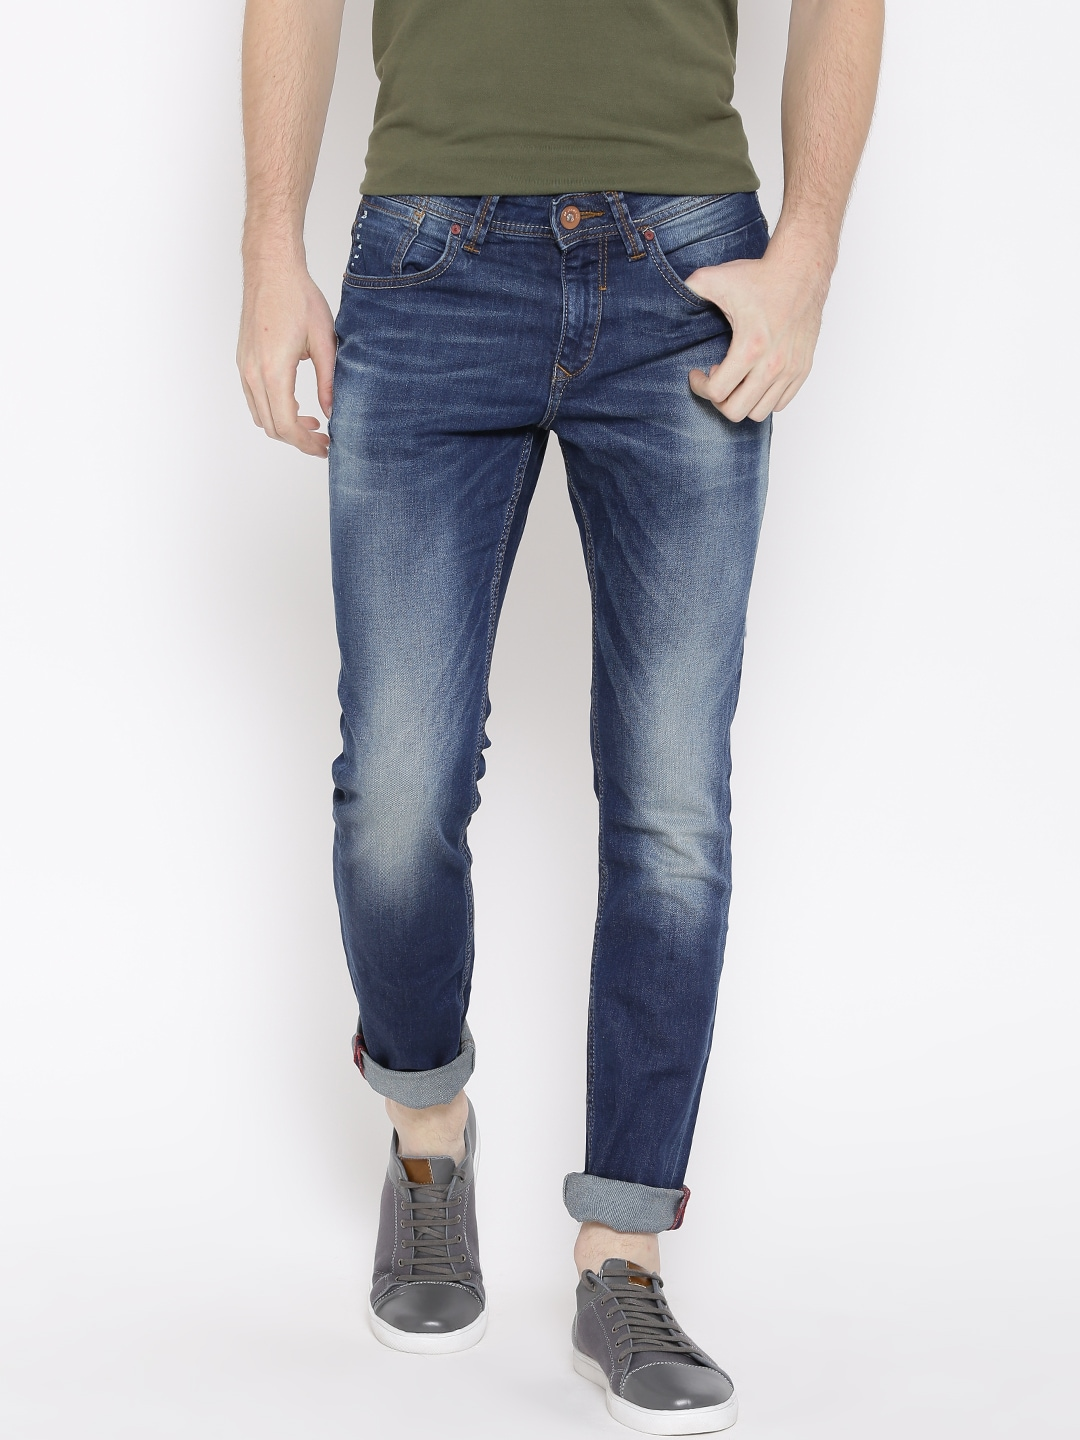 SF JEANS by Pantaloons Men Navy Jagger Skinny Fit Mid-Rise Clean Look Jeans